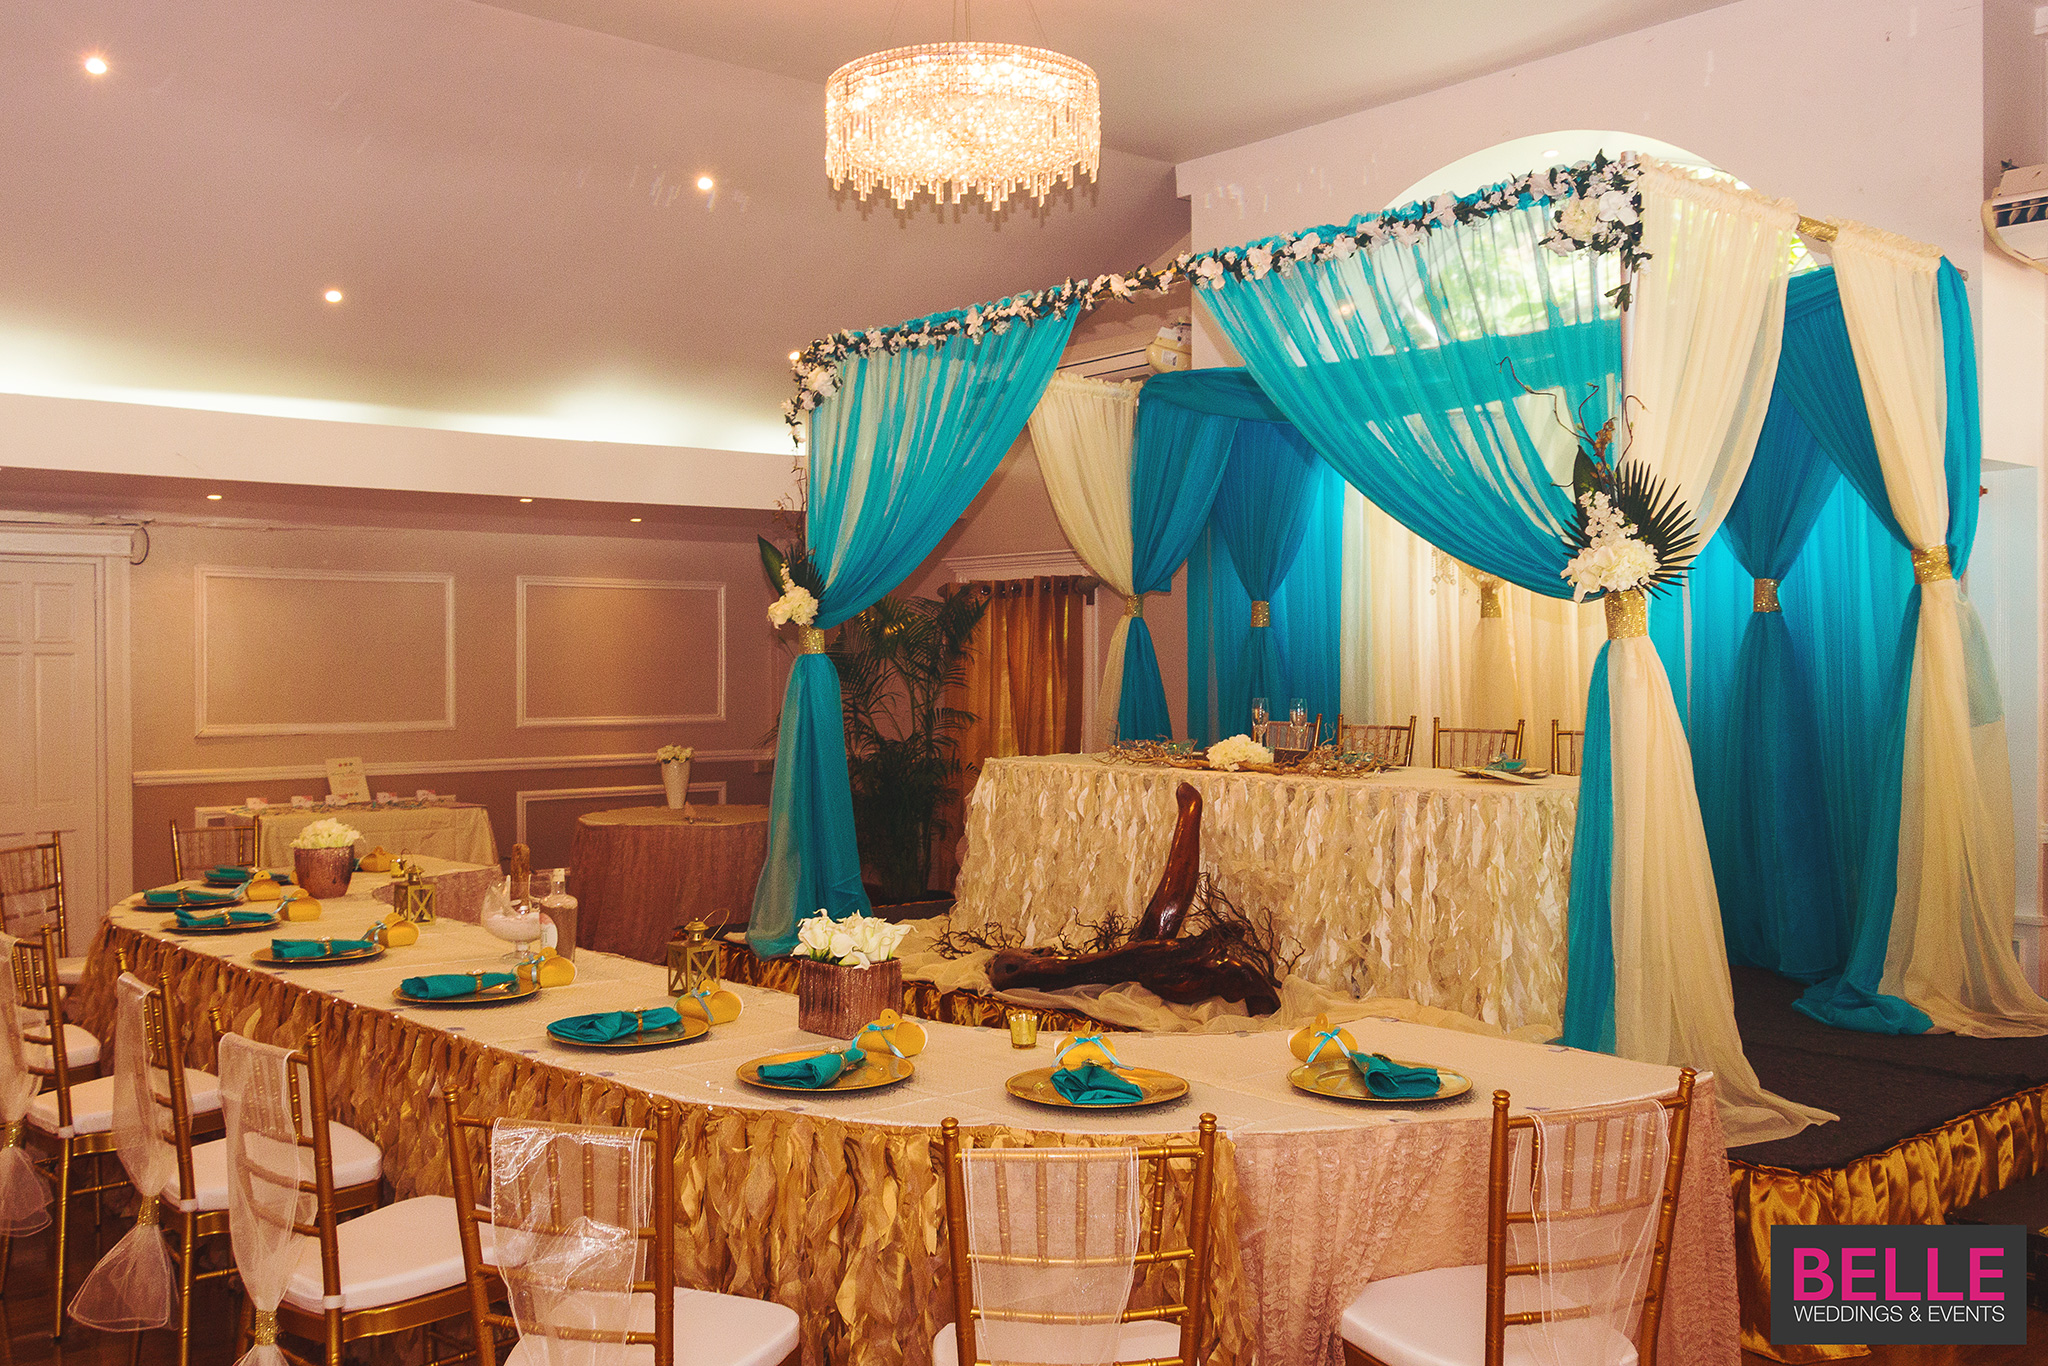 Bridal Chair Rental Trinidad Best House Interior Today